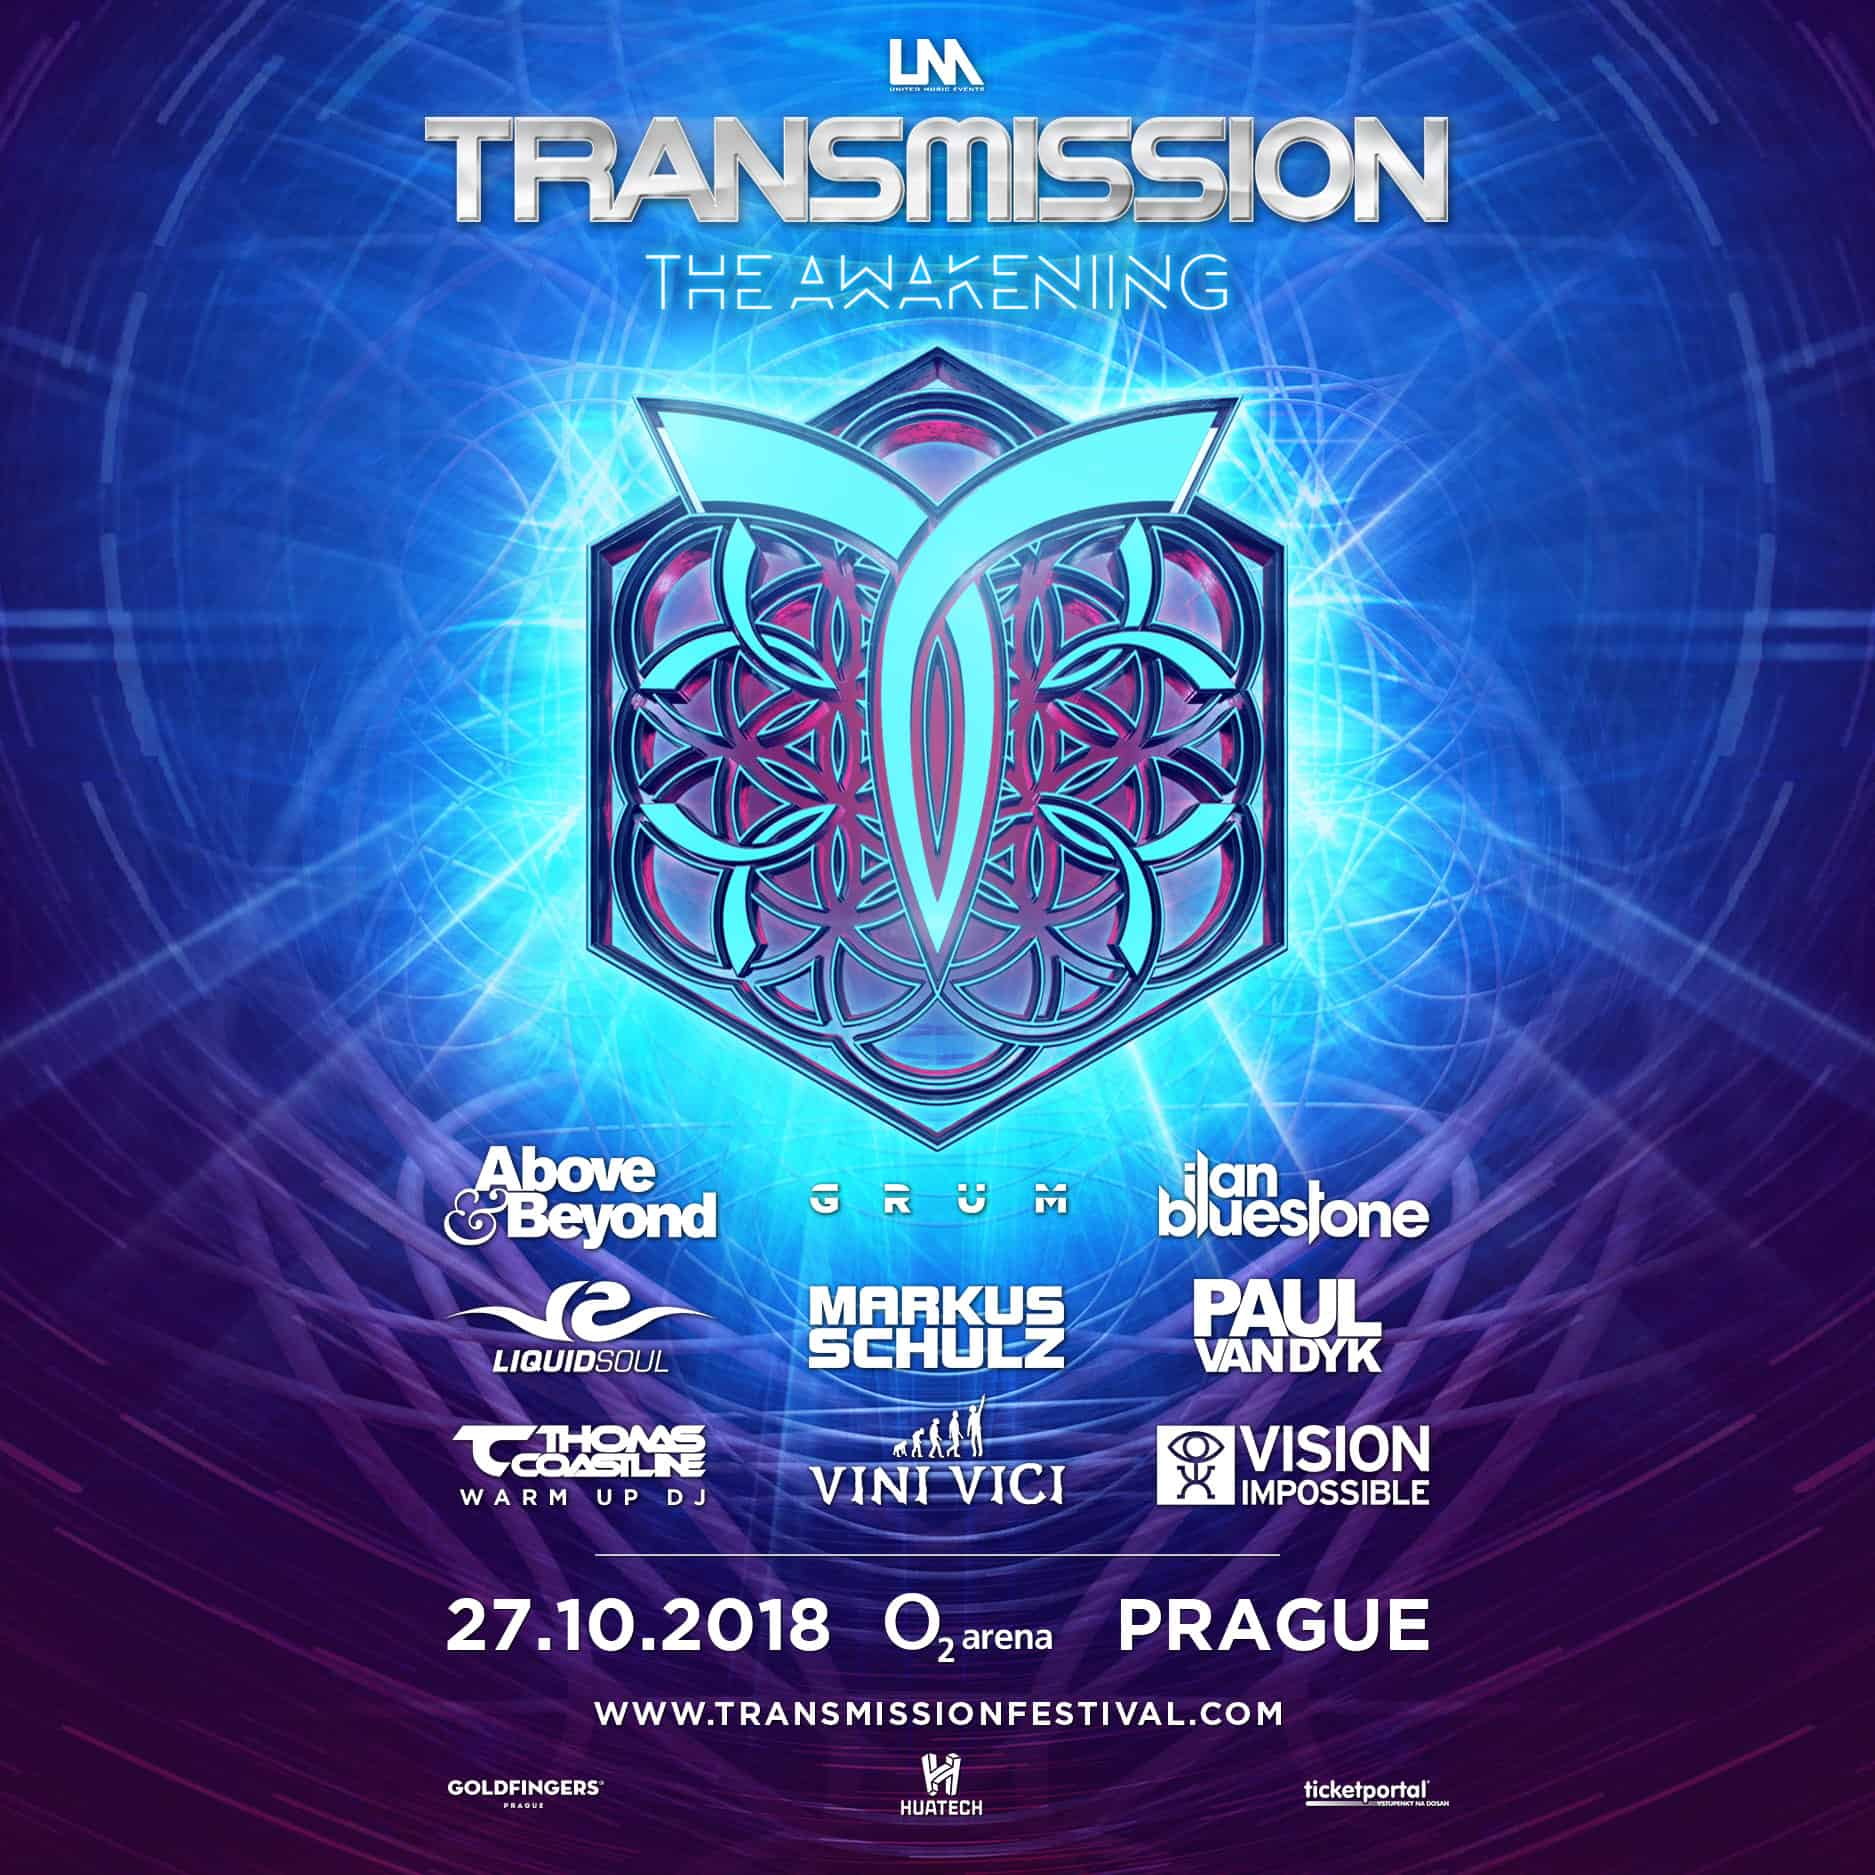 Transmission 2018 - The Awakening